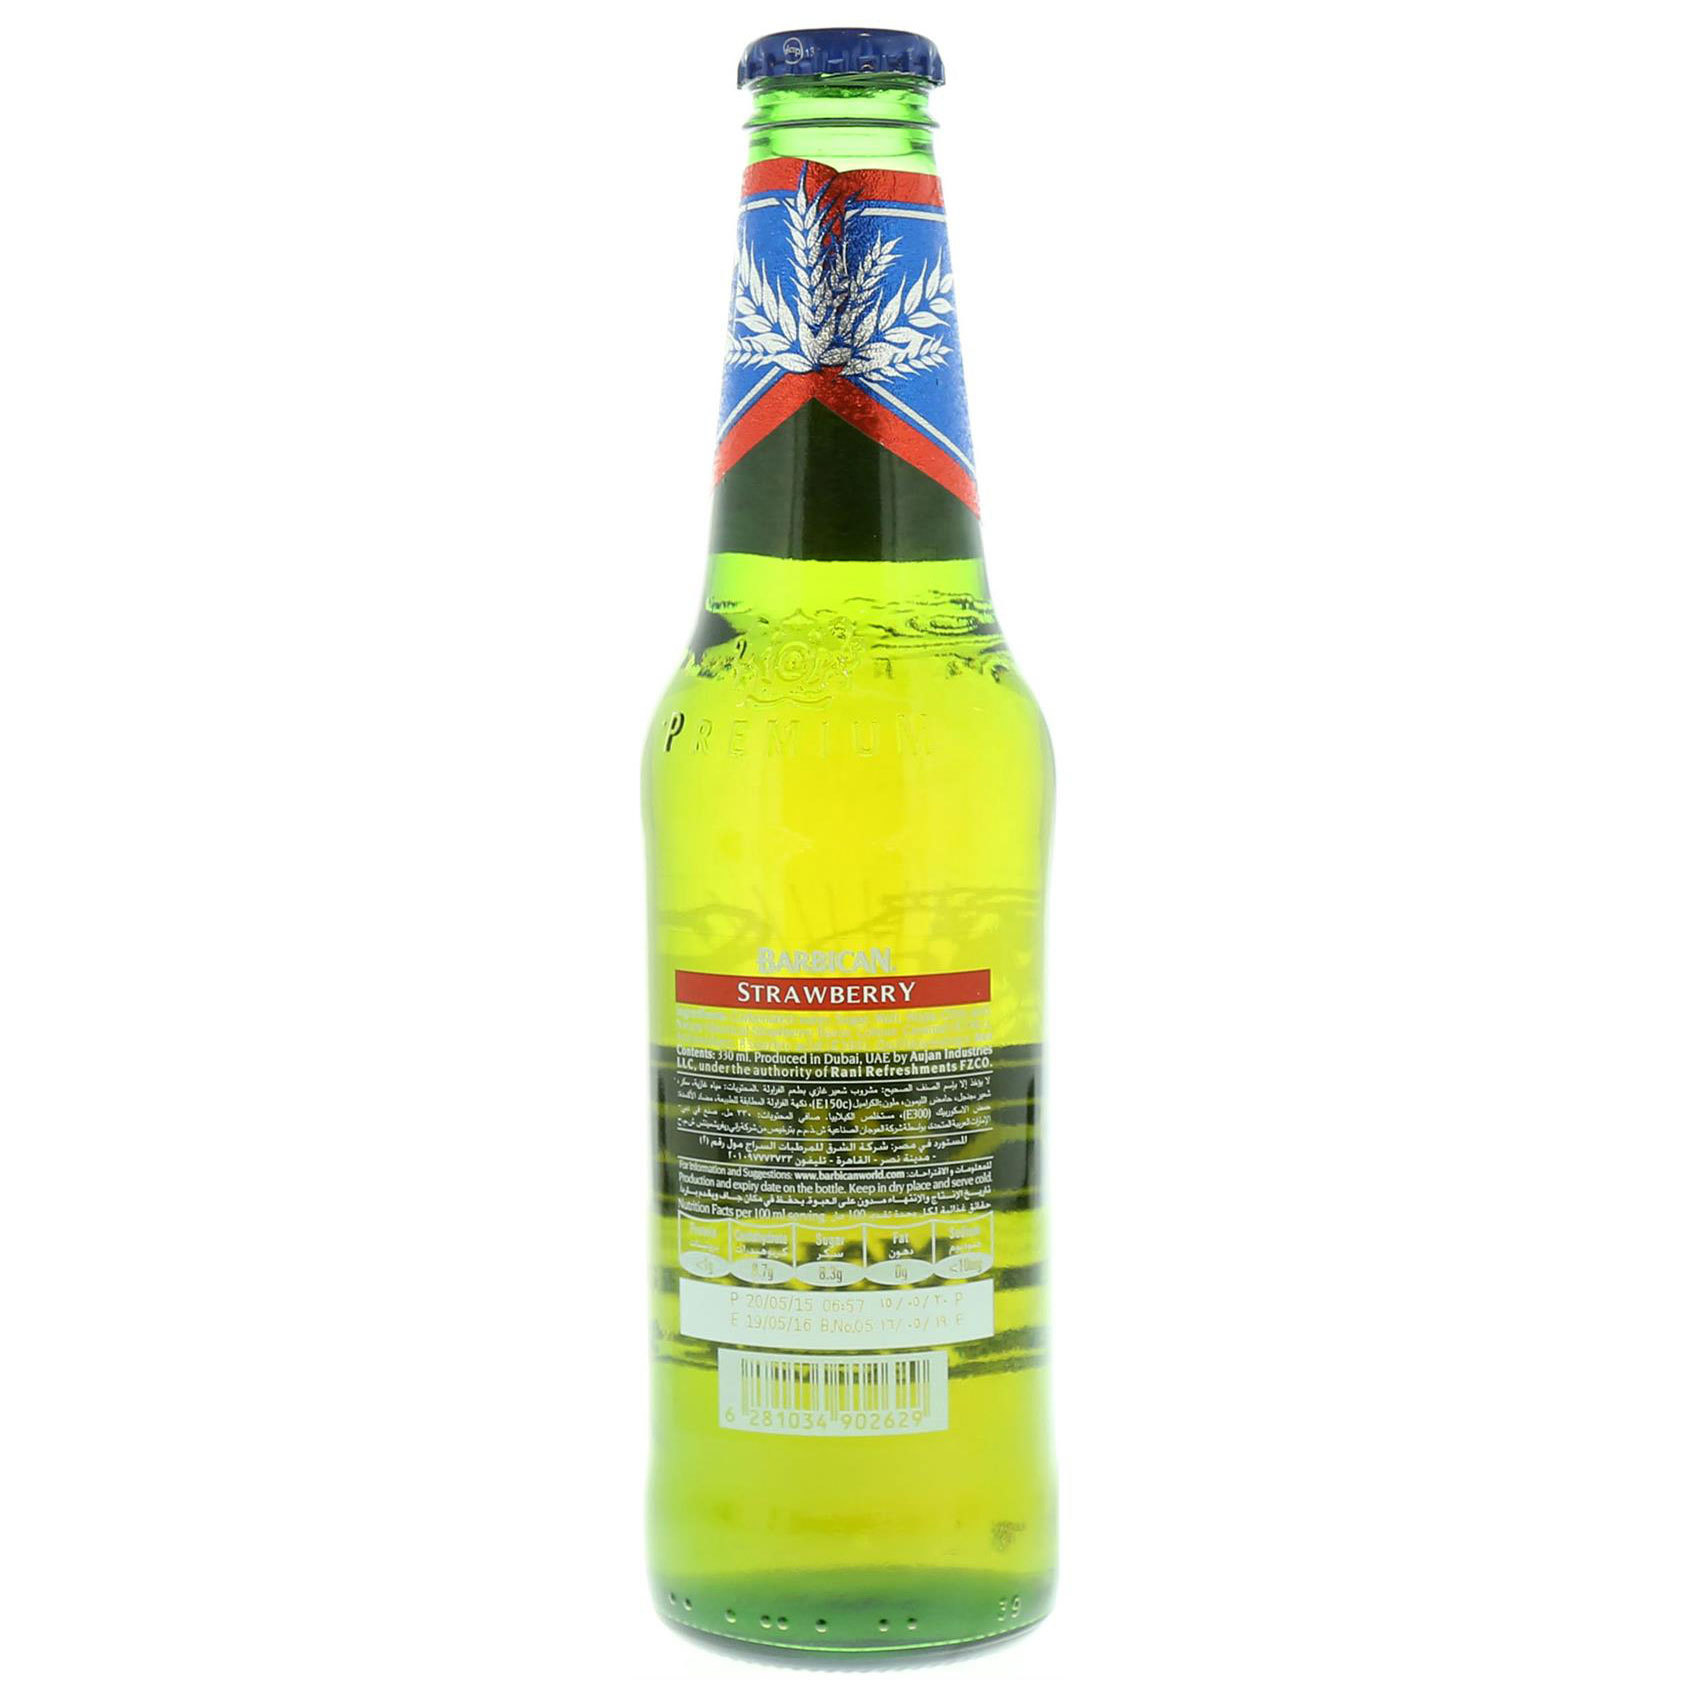 BARBICAN N/ALCO BEER S/BERRY330ML